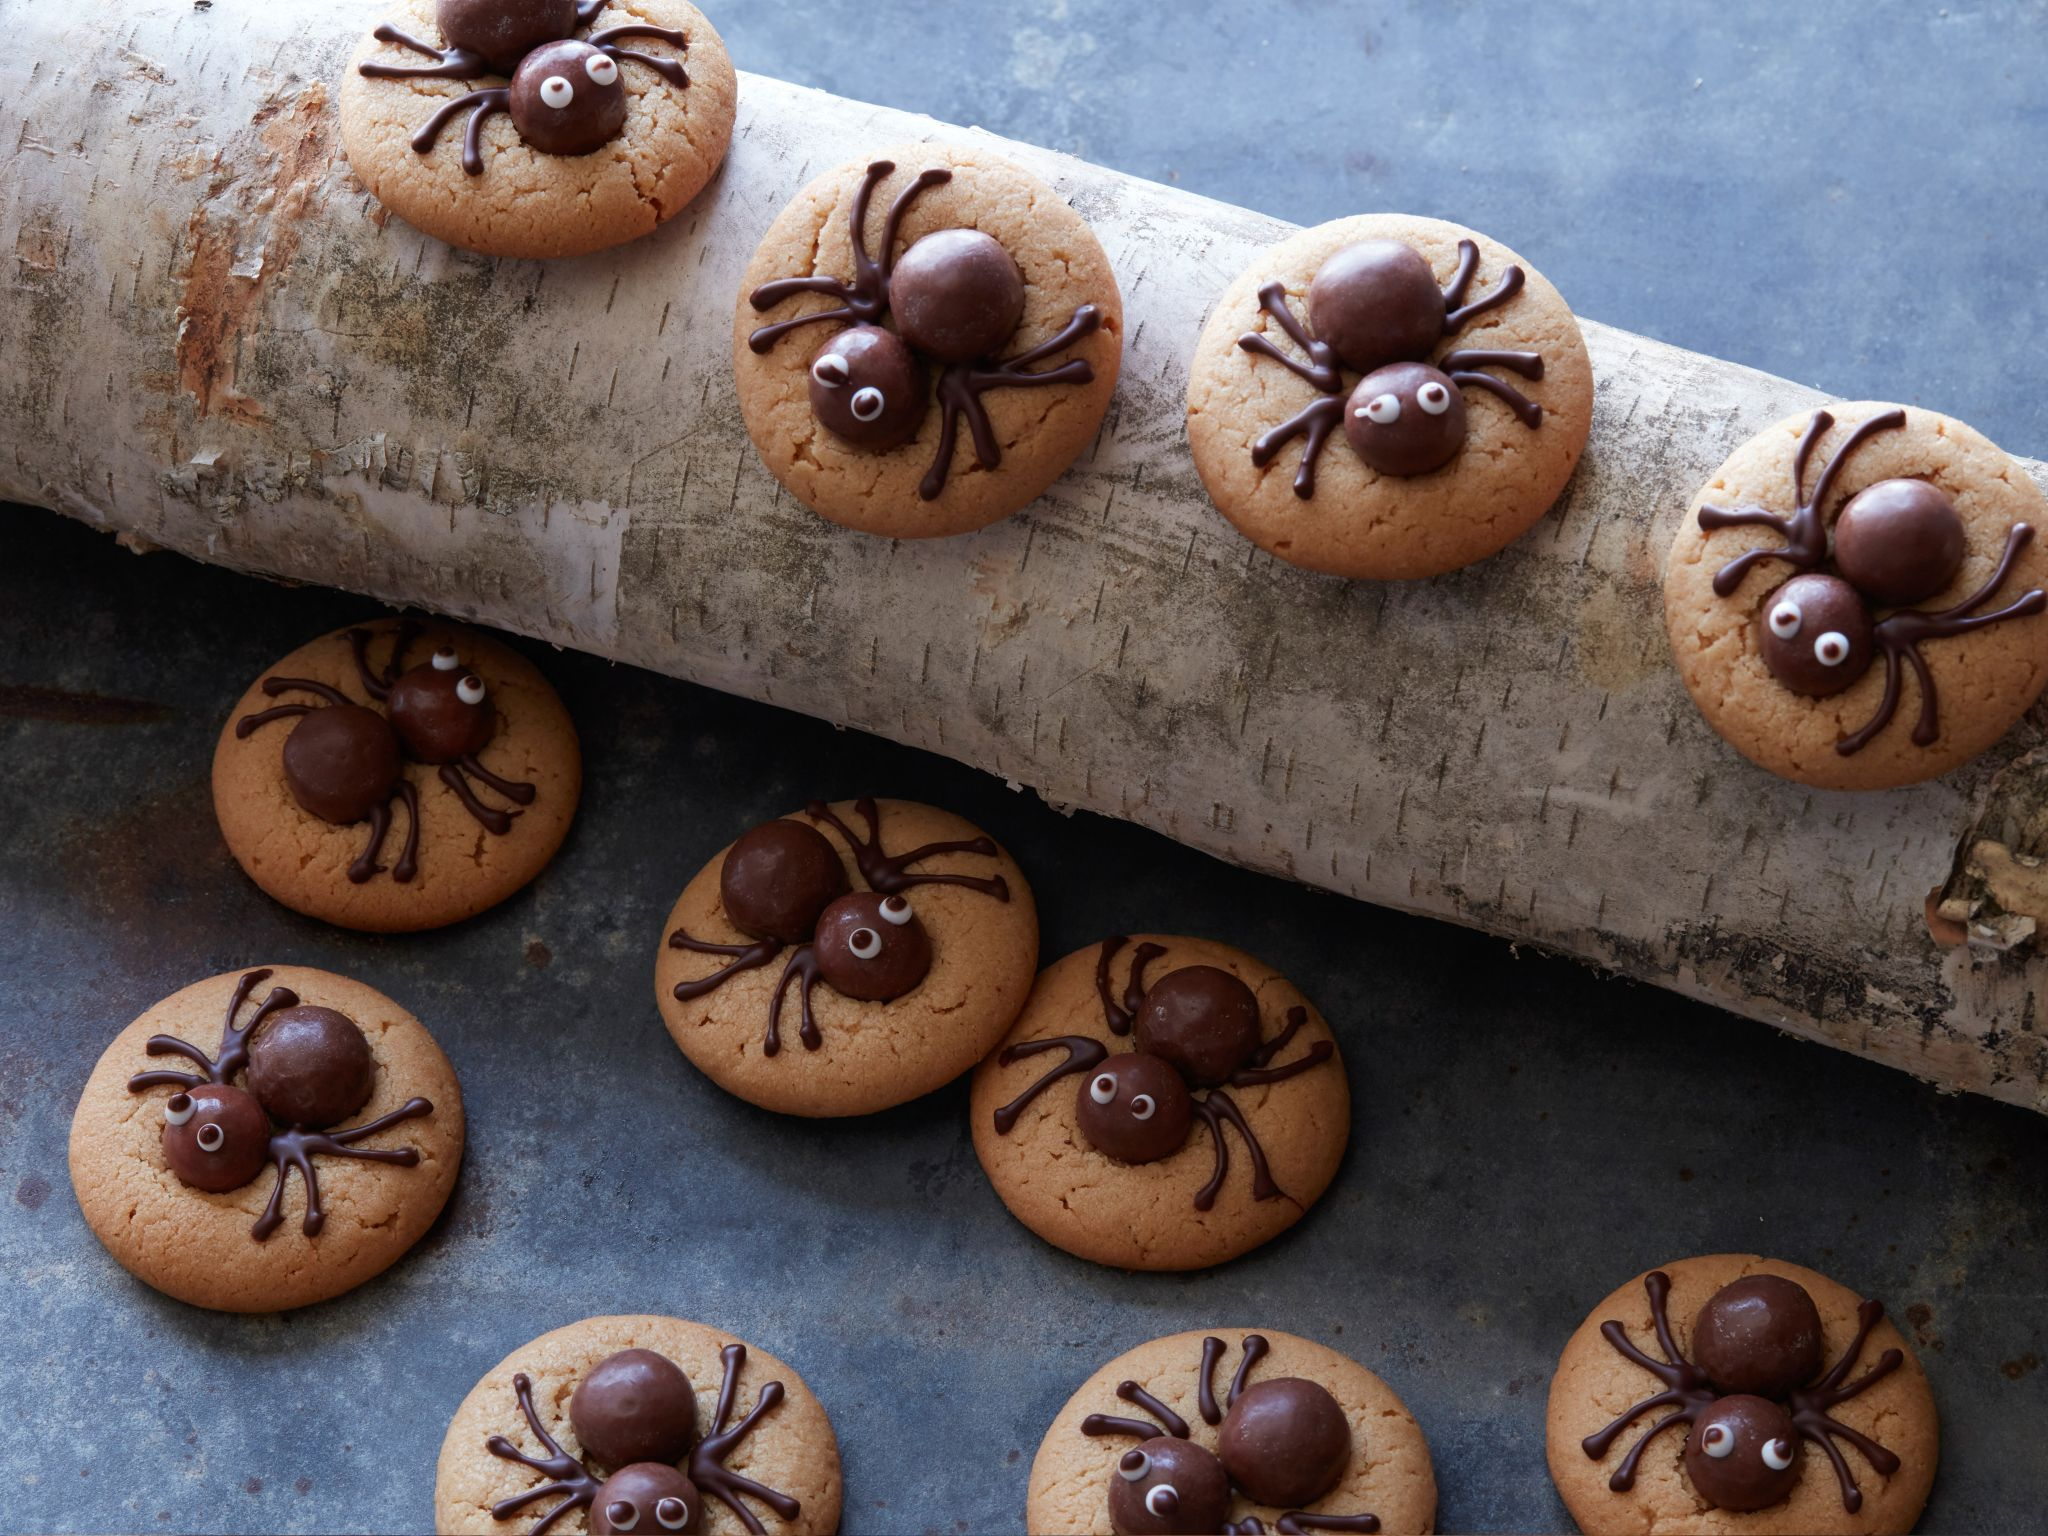 Spooky Peanut Butter Spider Cookies